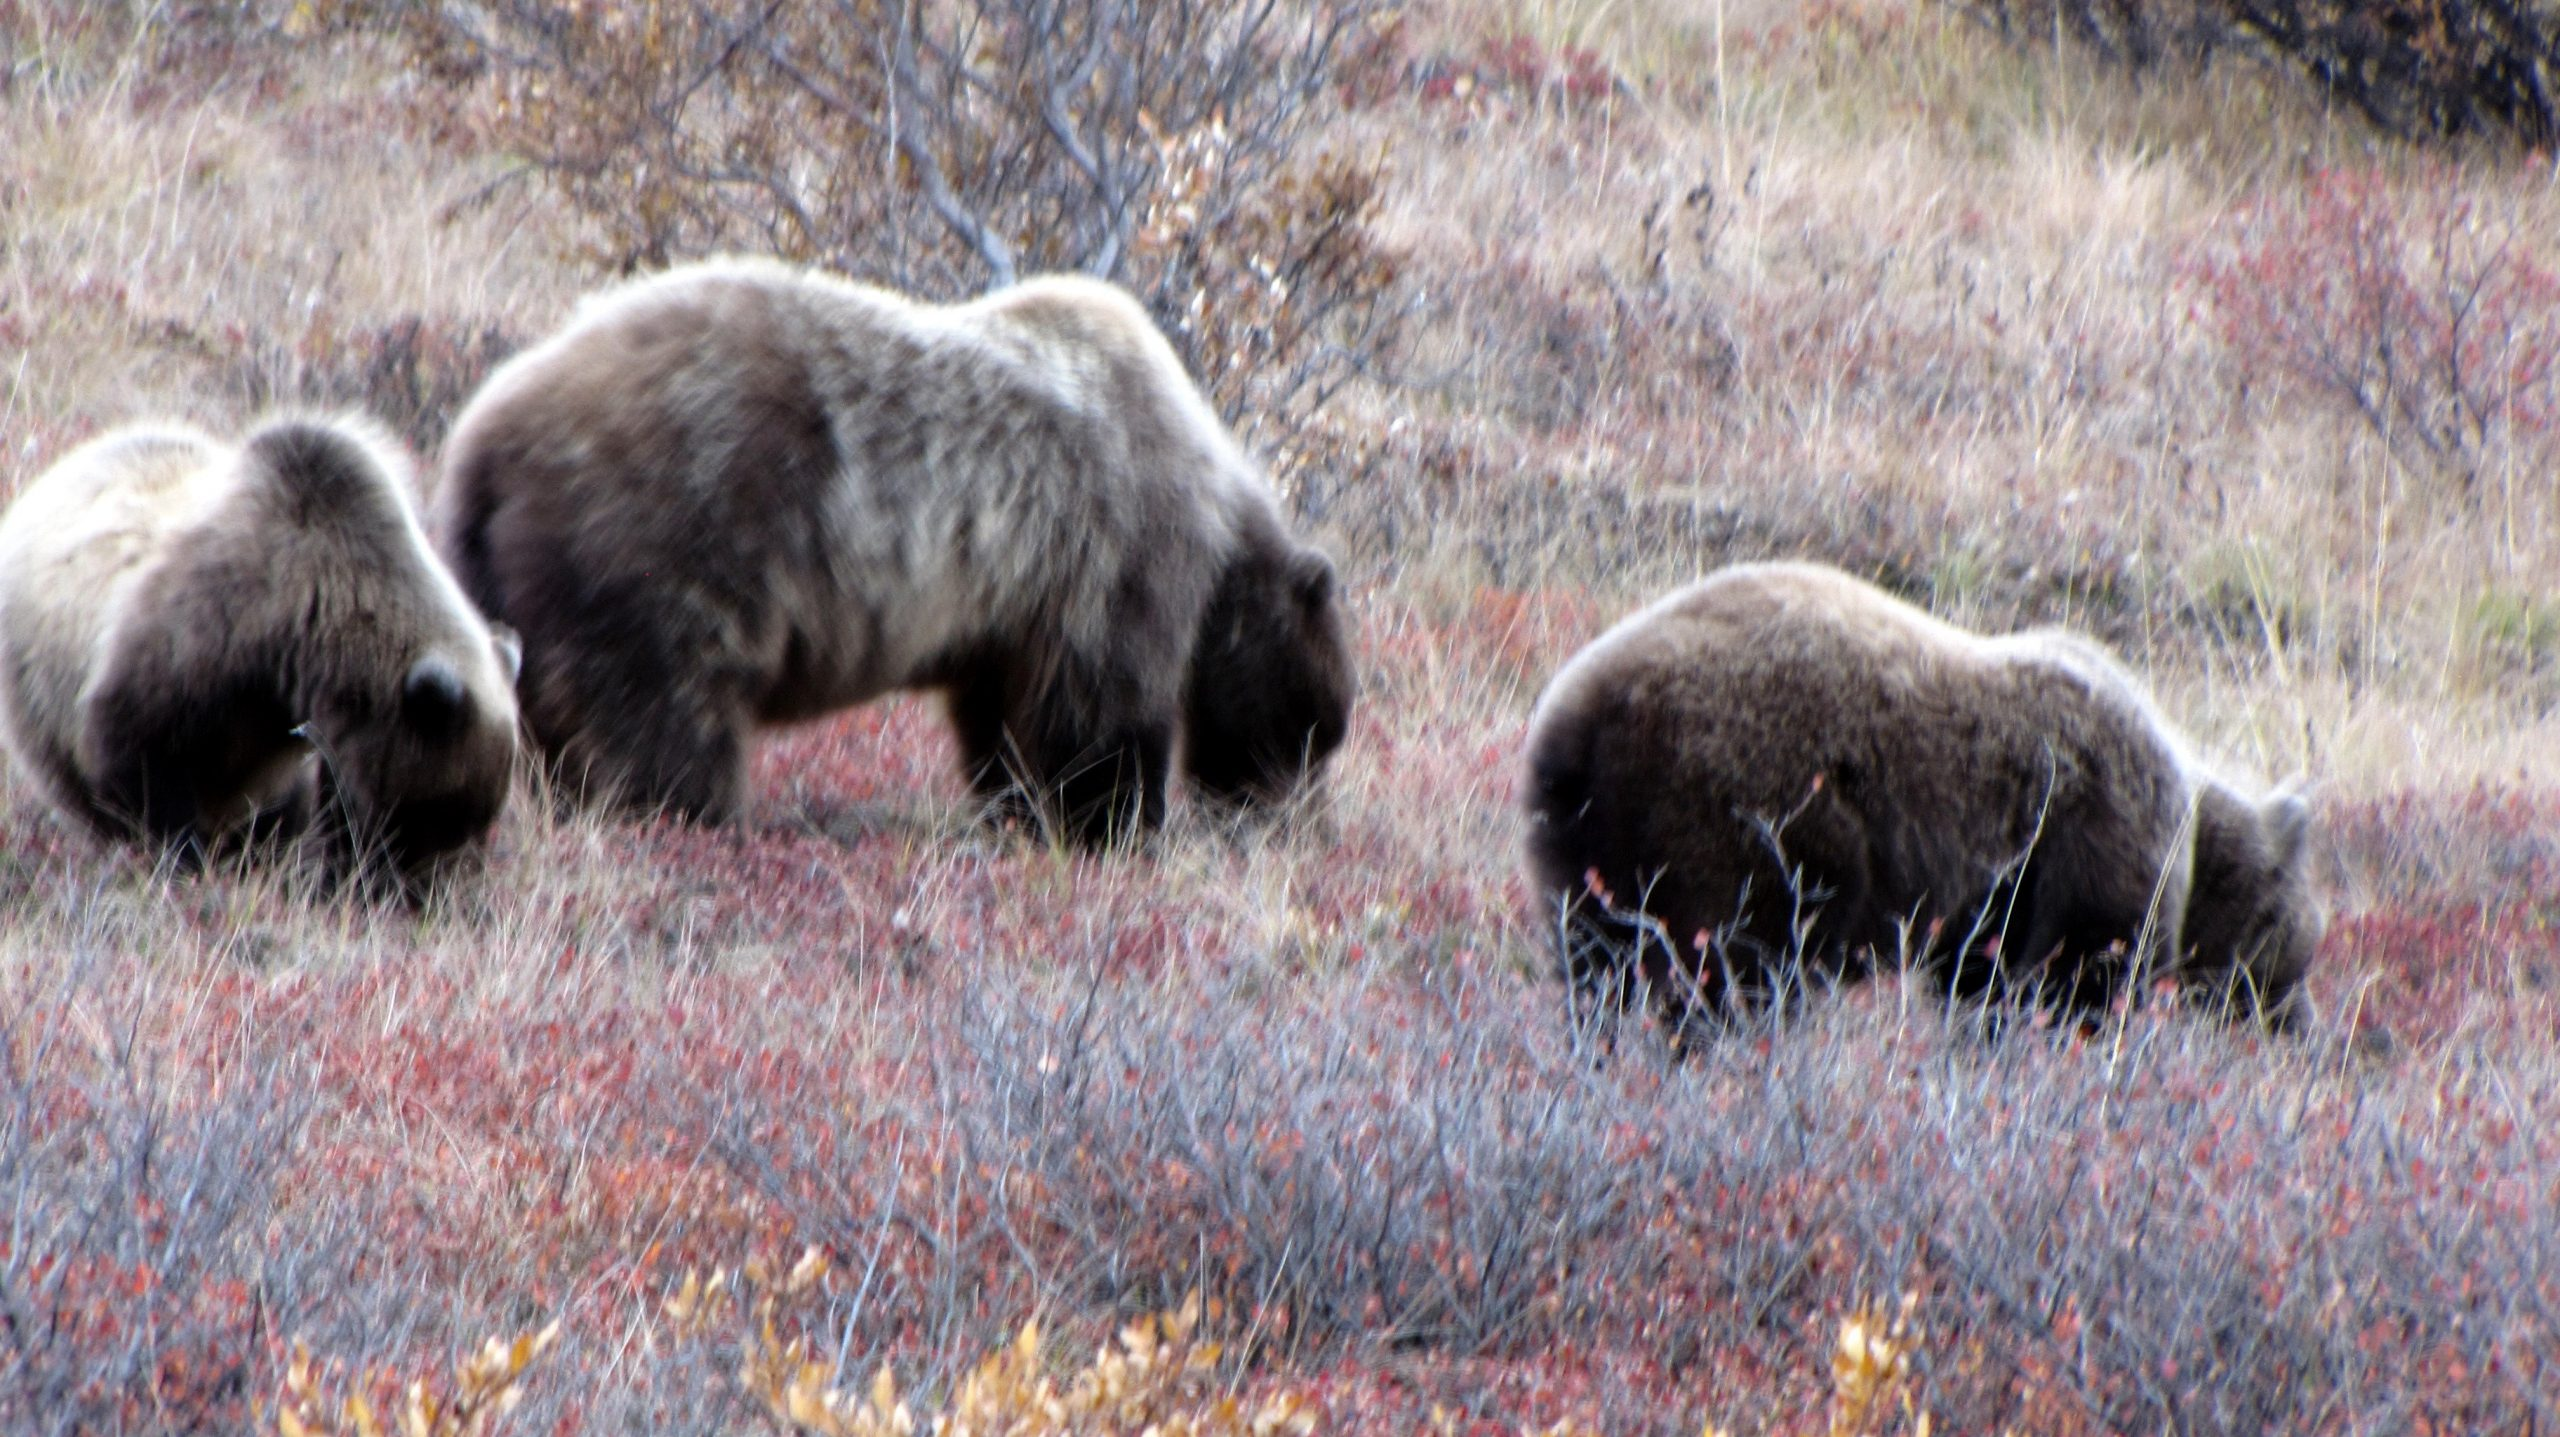 Bears searching for Fall berries in Denali National Park